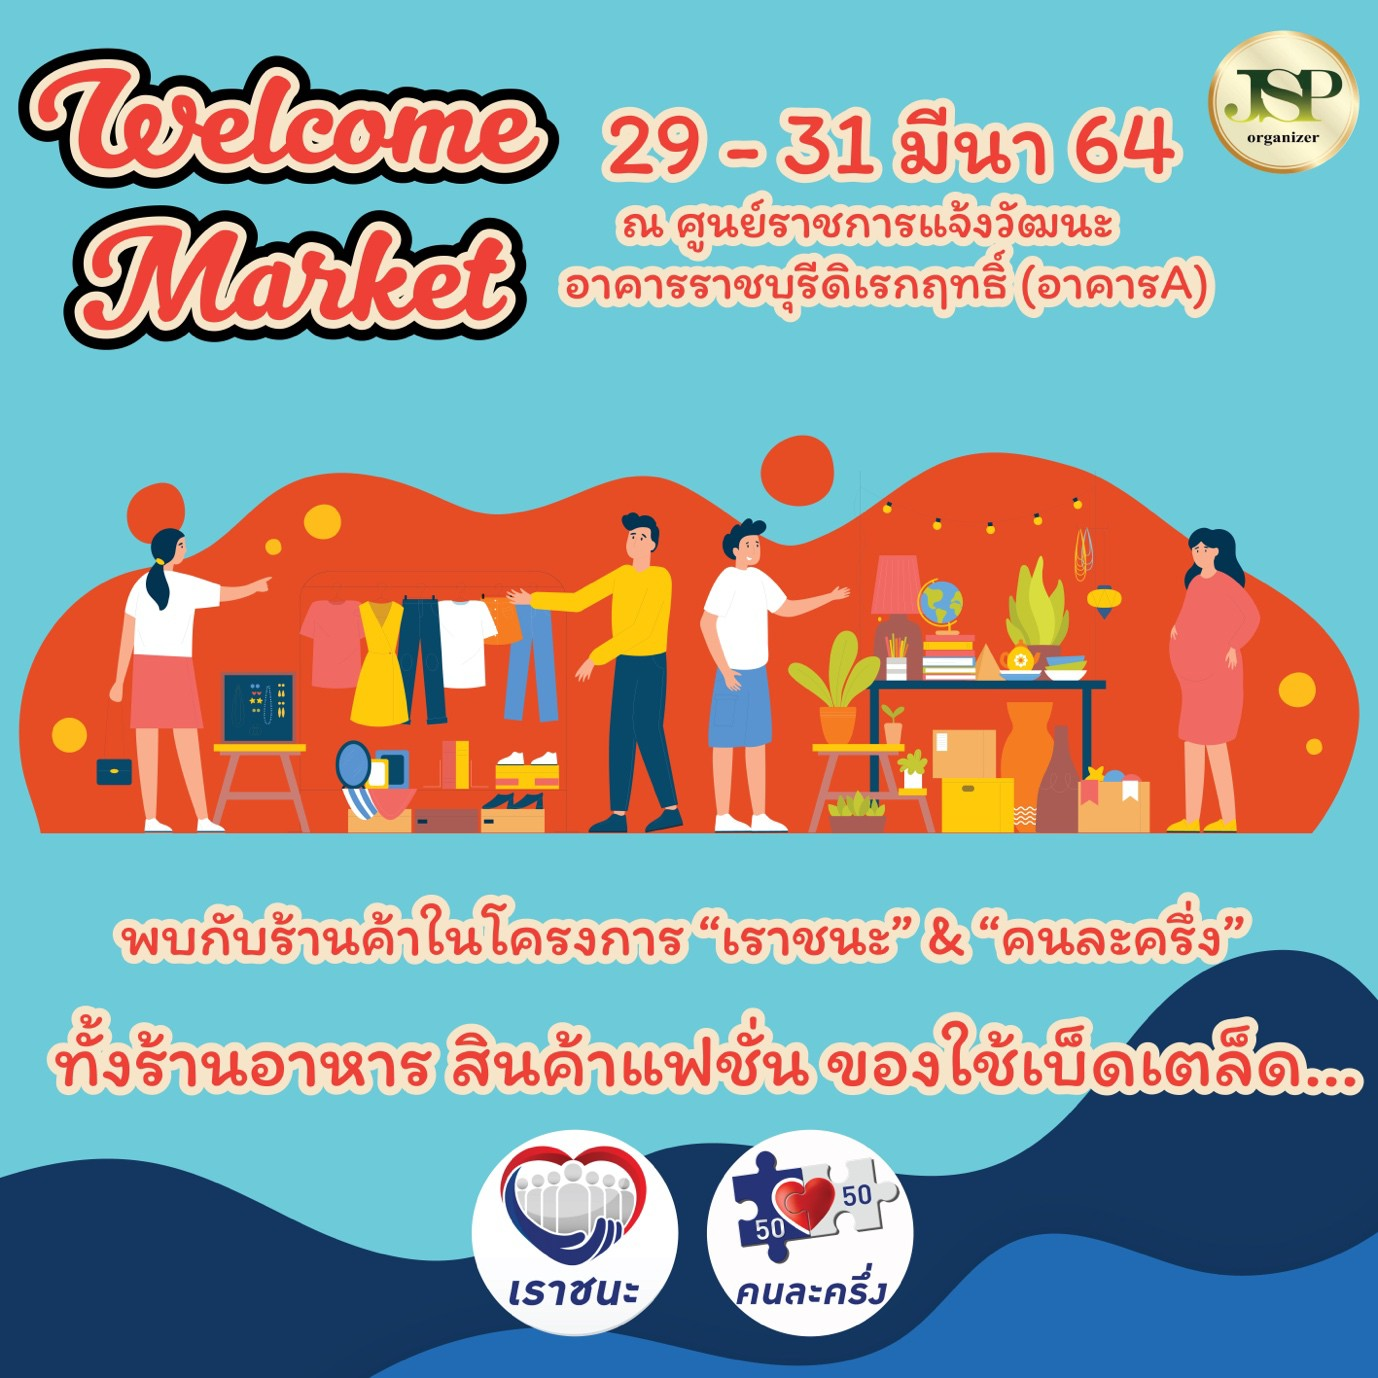 Welcome Market